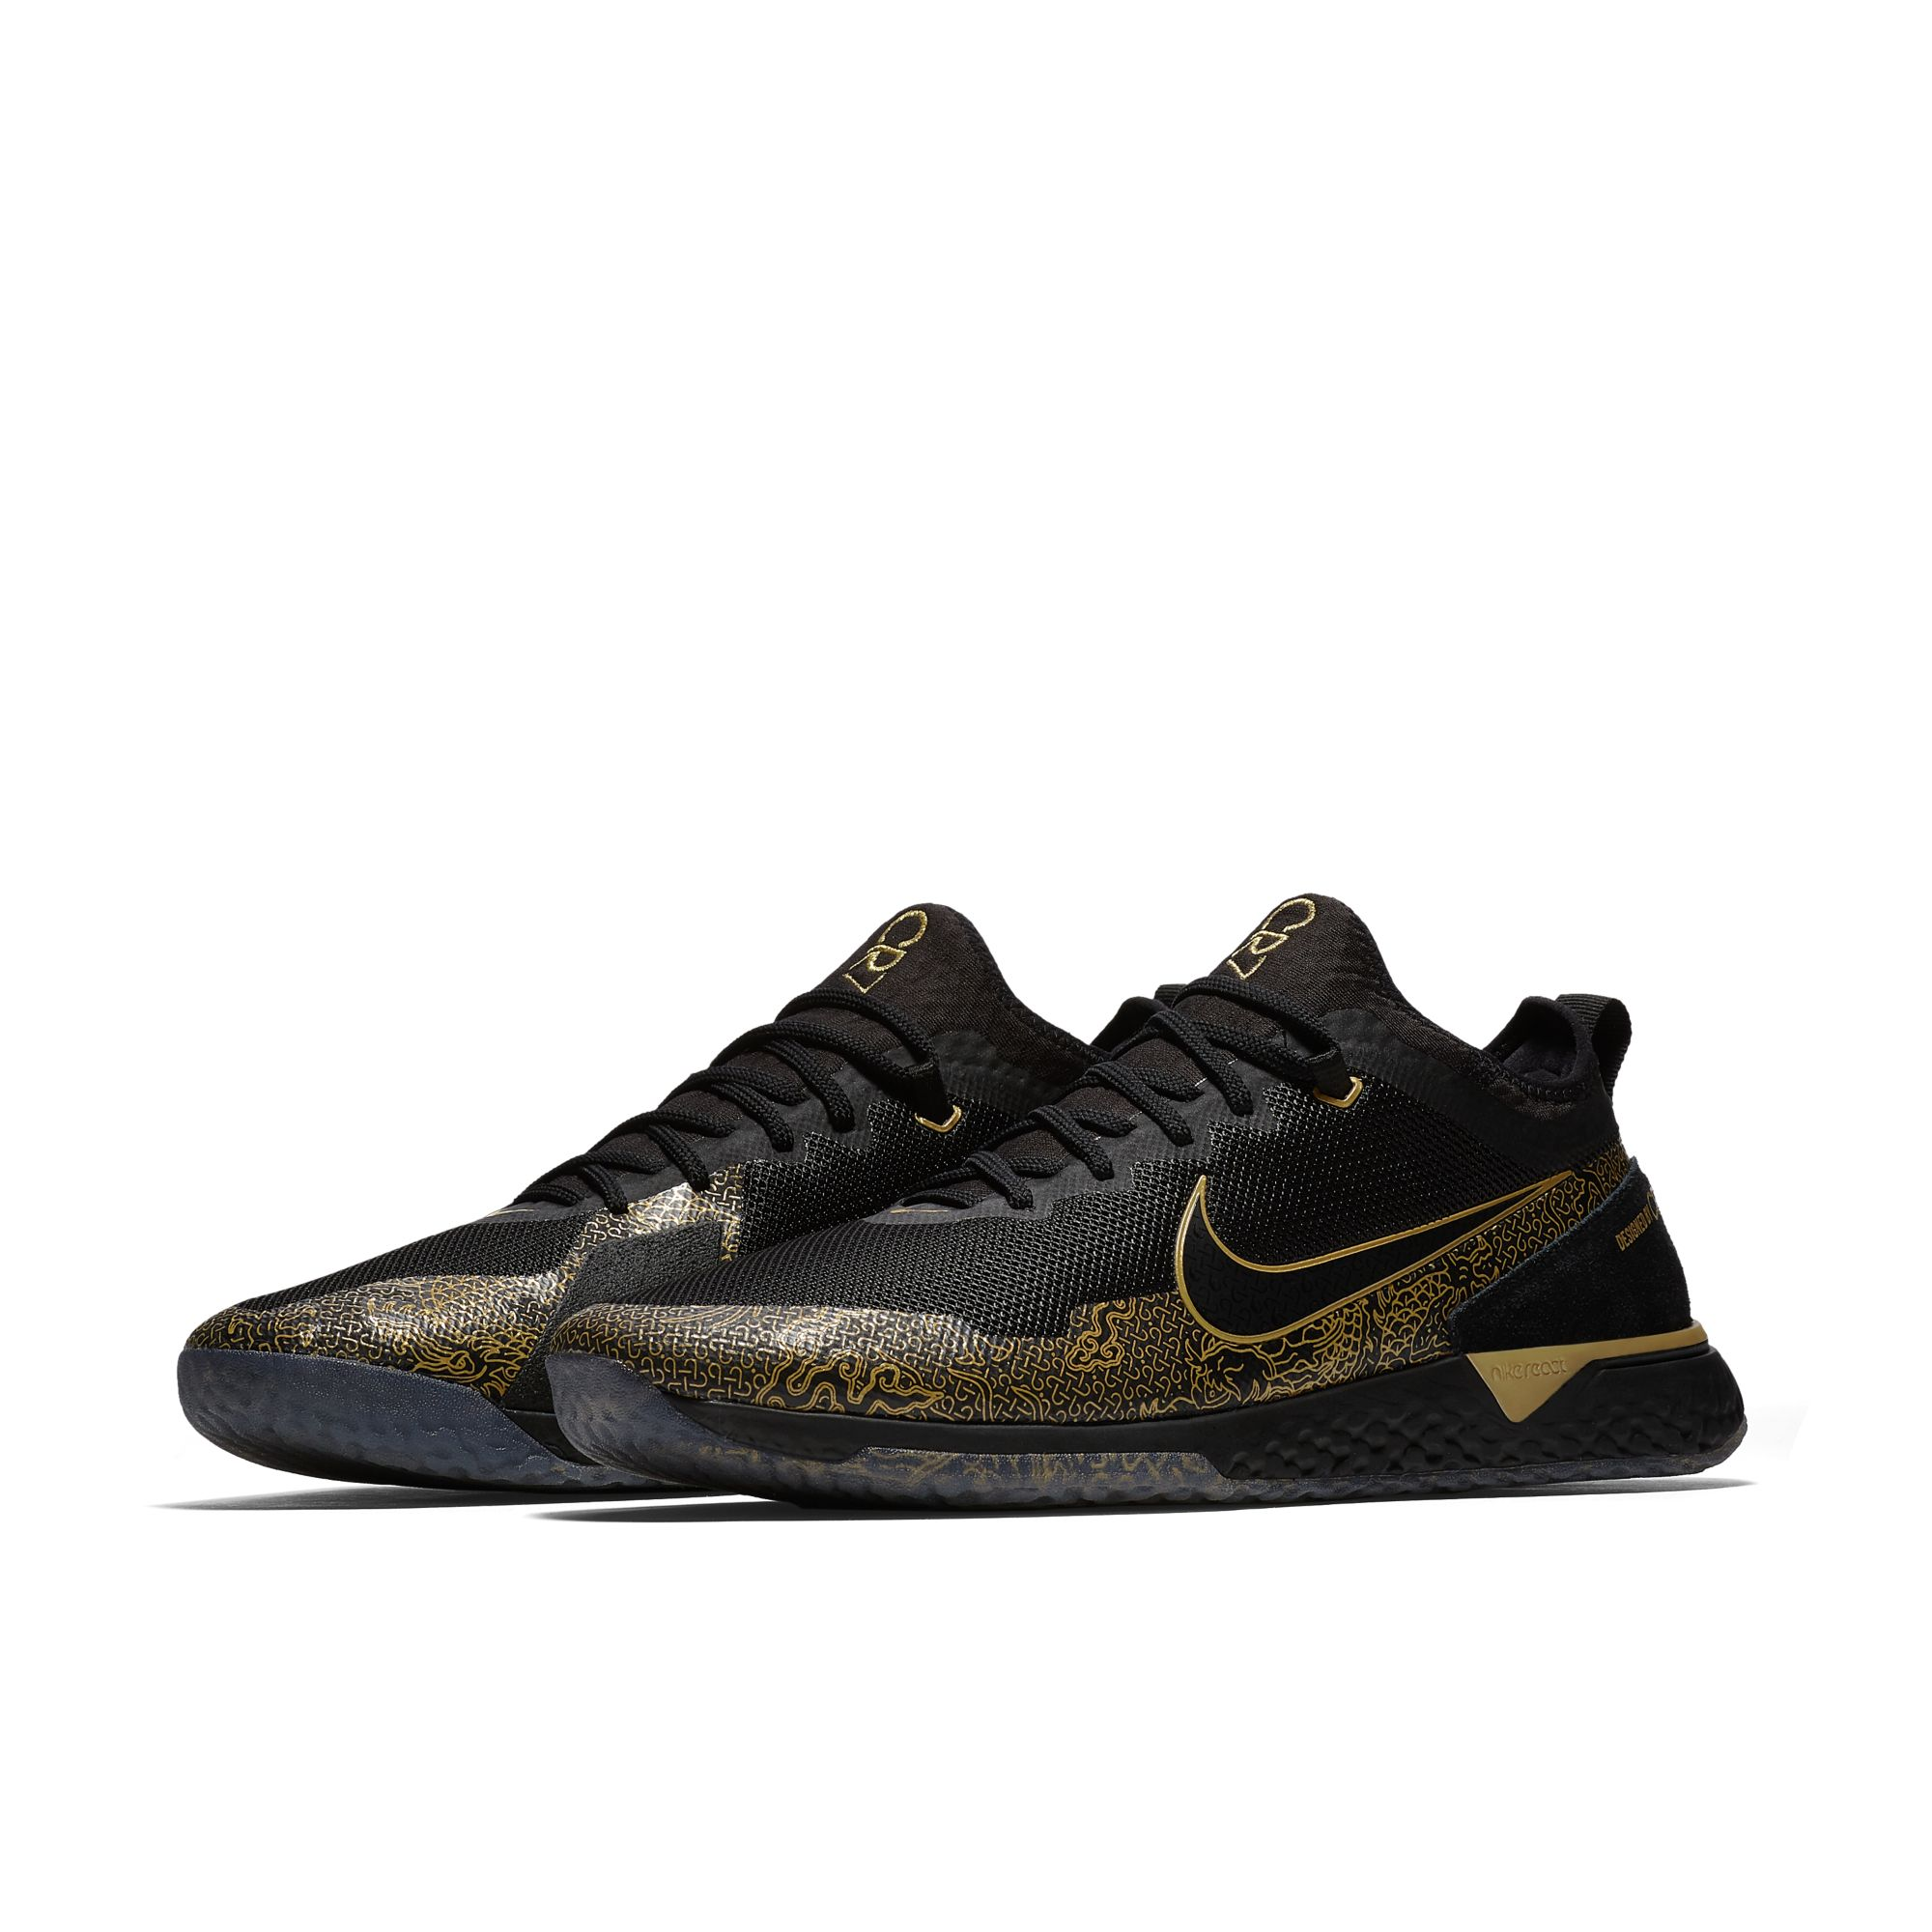 NIKE FC CR7 BLACK:METALLIC GOLD:BLACK 2